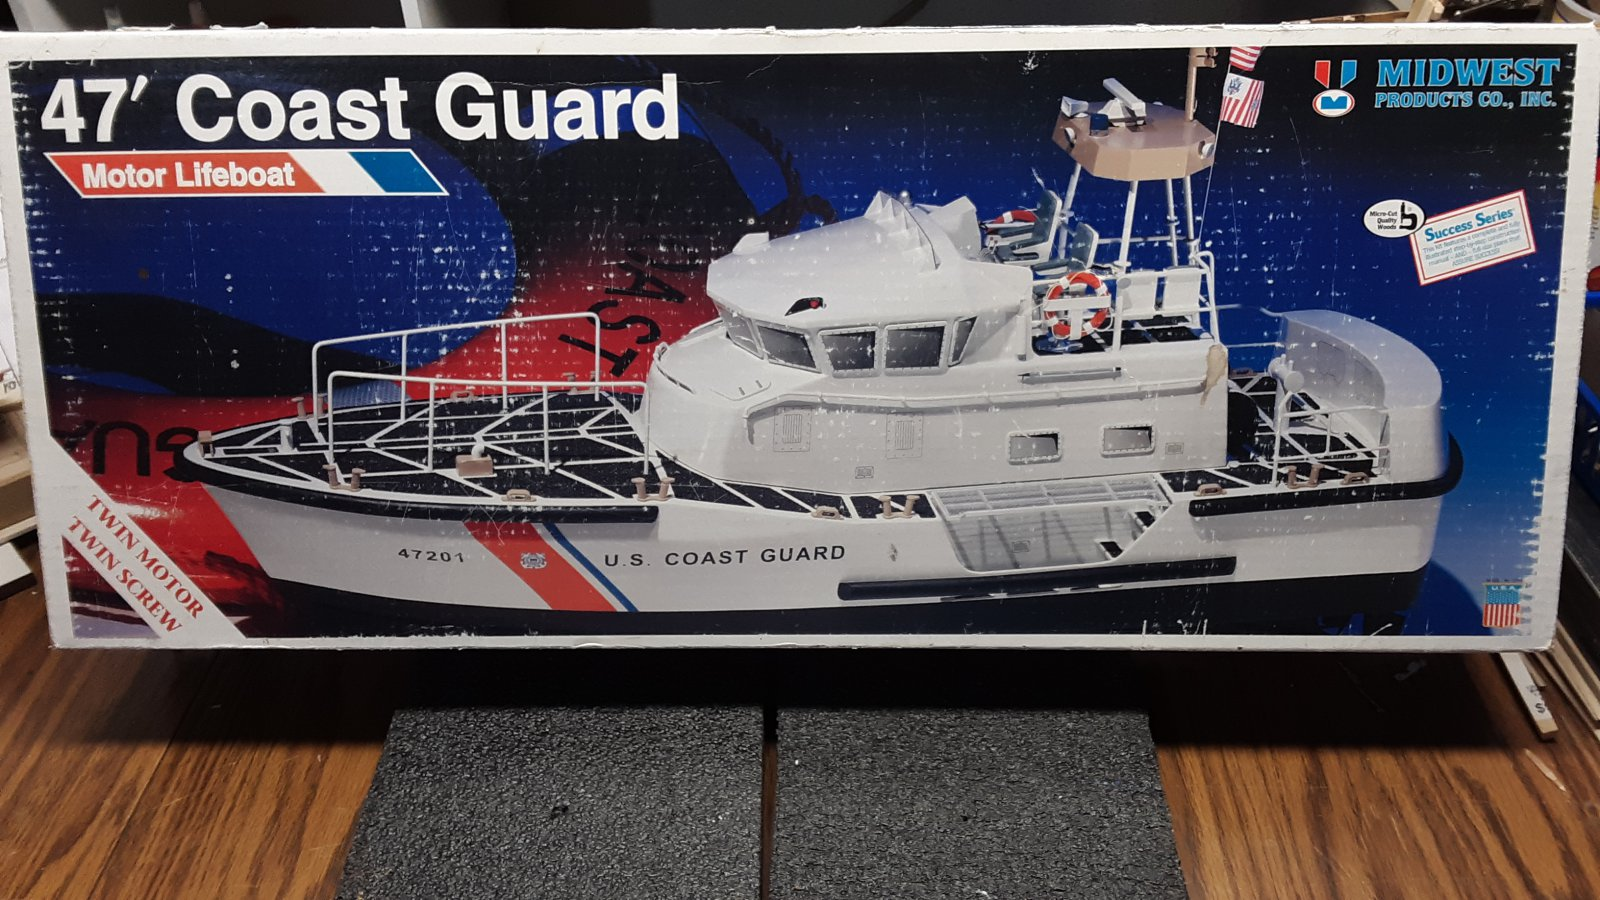 1 Coast Guard life boat.jpg